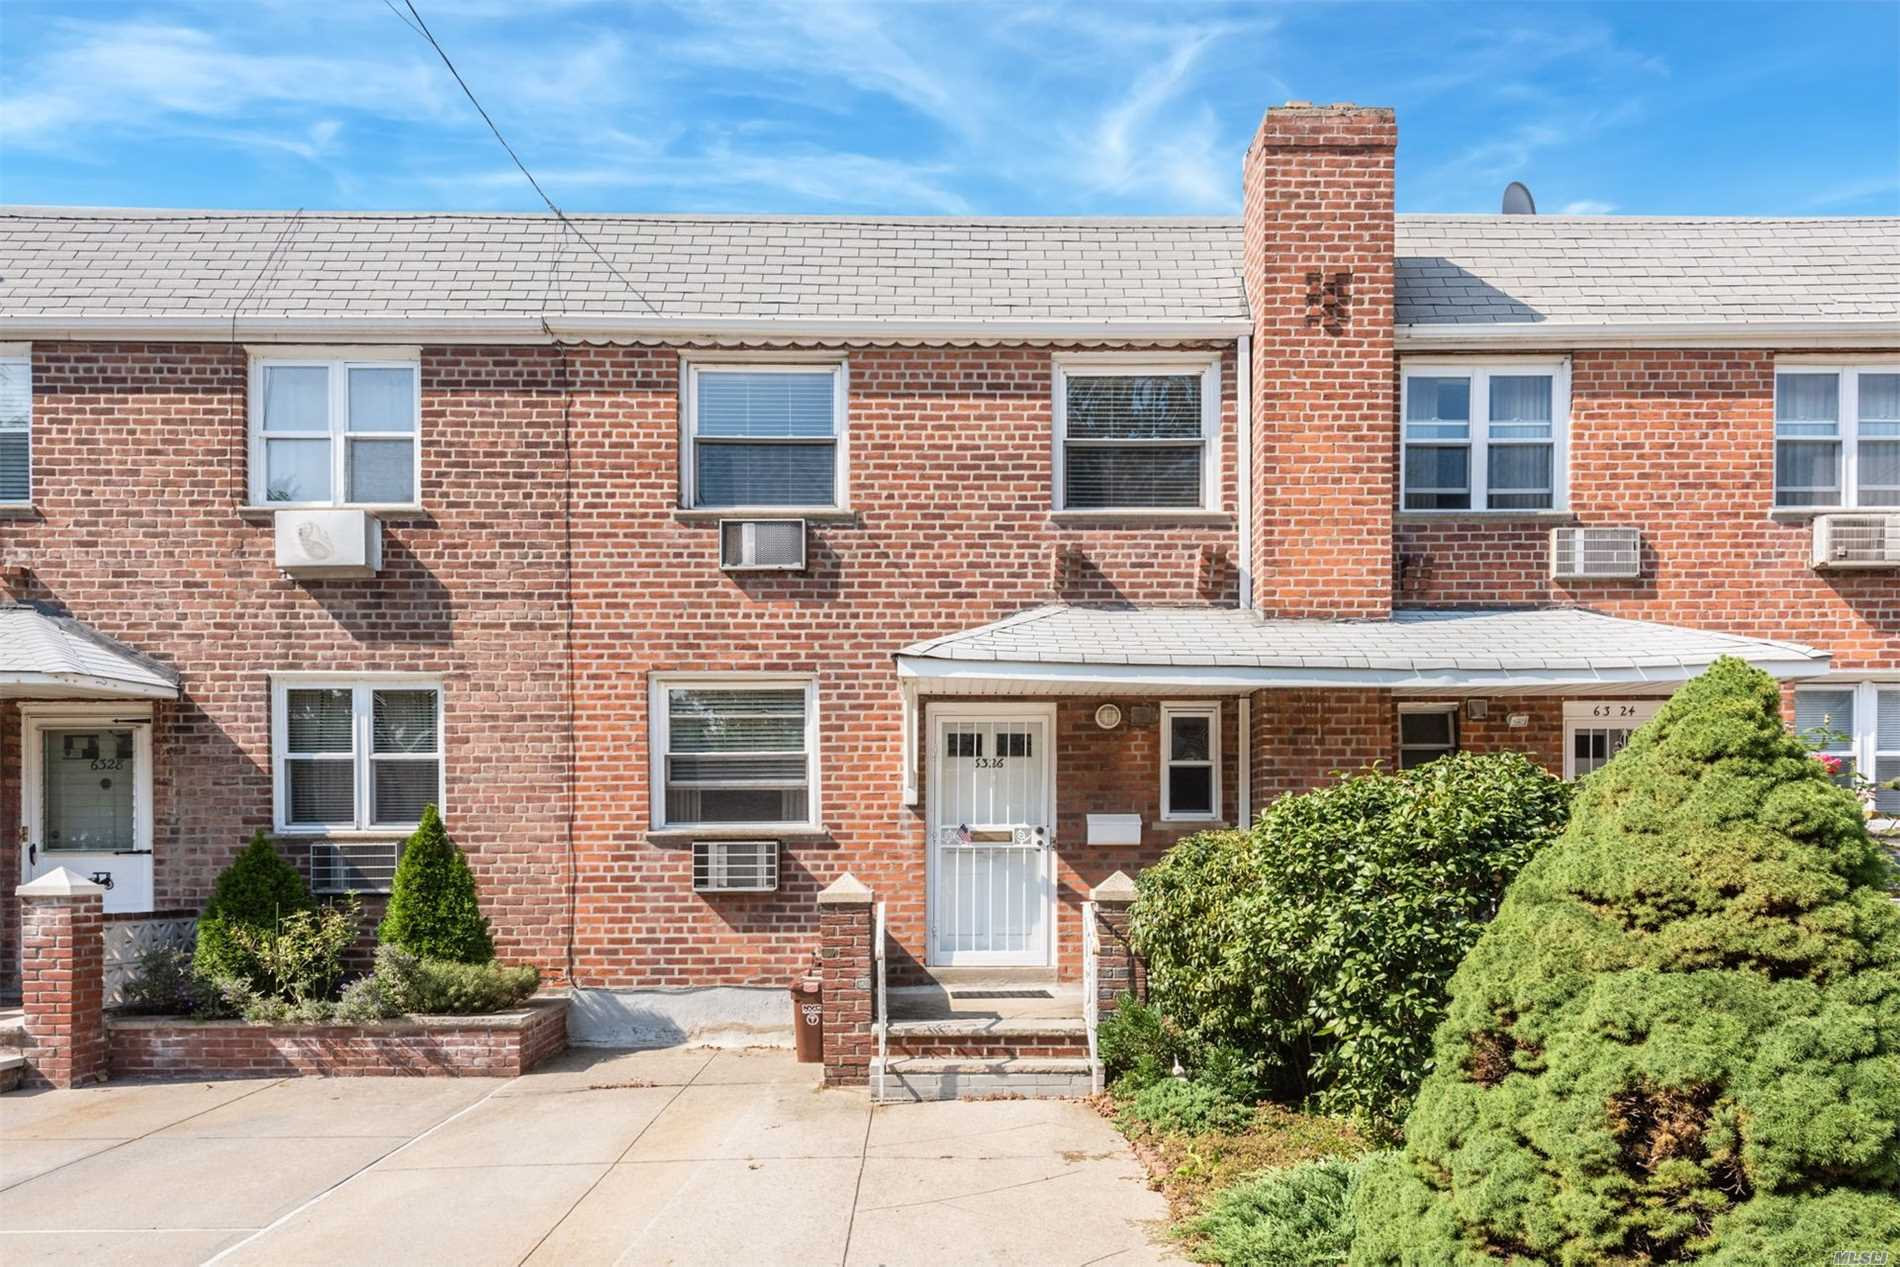 2 Family Brick Home, Completely Renovated With Upscale Material, Including Heating, Plumbing, Electrical. Minutes To Juniper Valley Park. First Floor Includes 1 Large Br And Access To Backyard. 2nd Floor Has 2 Large Br, Lr, Formal Dr, Eik And Full Bath Along With A Patio And Deck Which Leads To The Backyard. Two Car Front Parking Space. Less Than 10 Minute Walking Distance To Q38 And Q67 For Transfers To Midtown. 15 Minute Walk To Middle Village - Metropolitan Ave M Train Station.